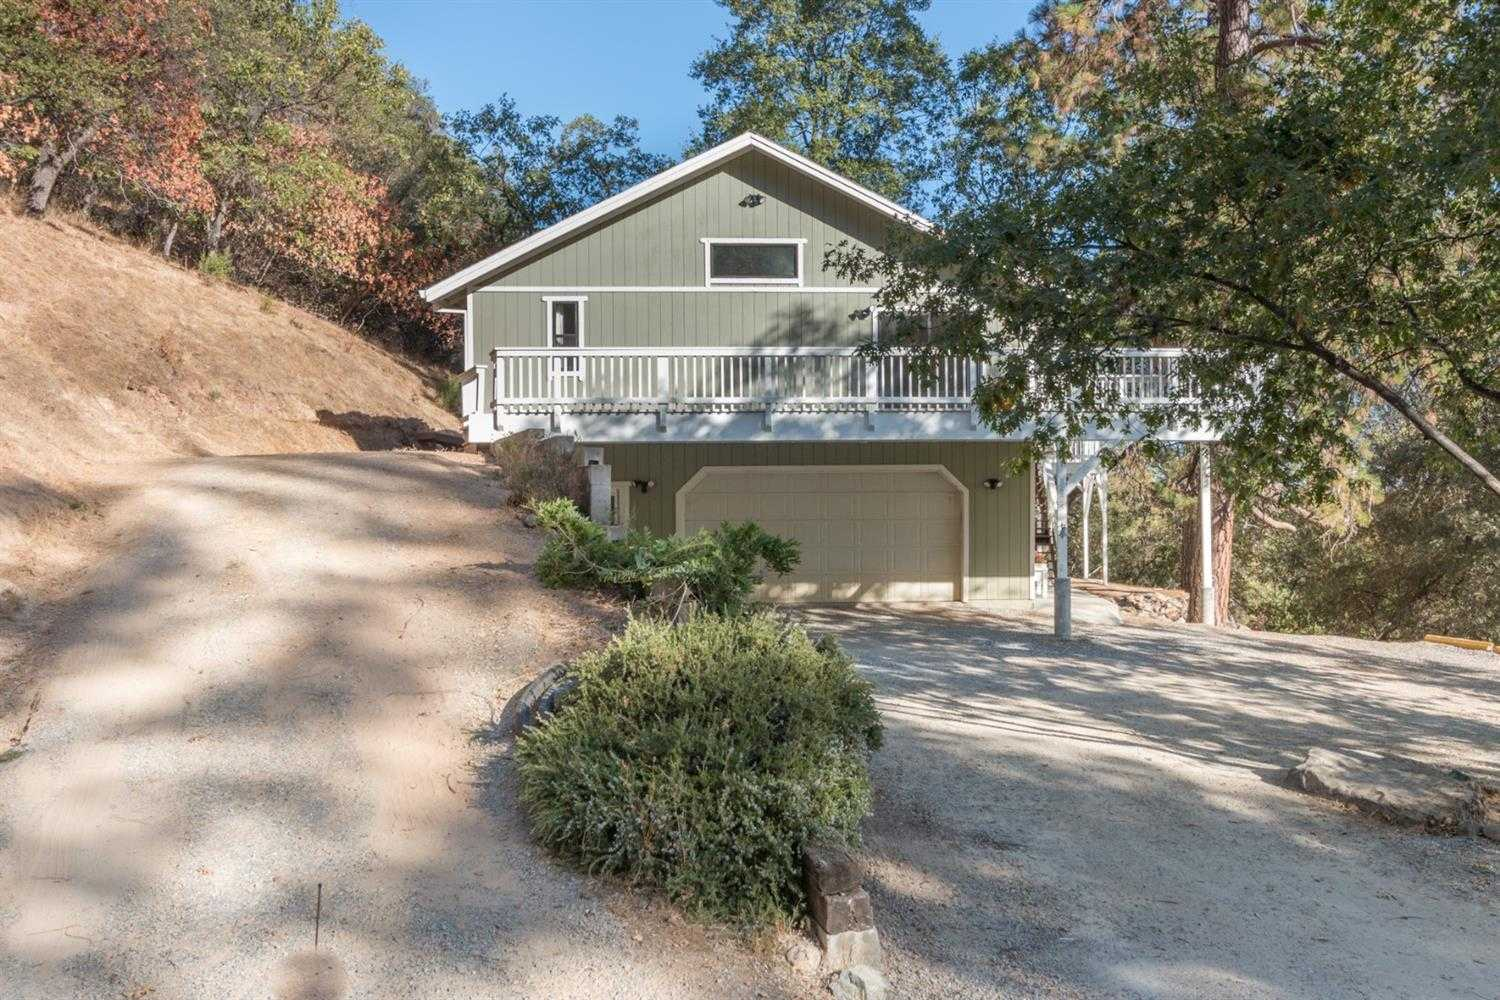 $474,000 - 3Br/3Ba -  for Sale in Placerville